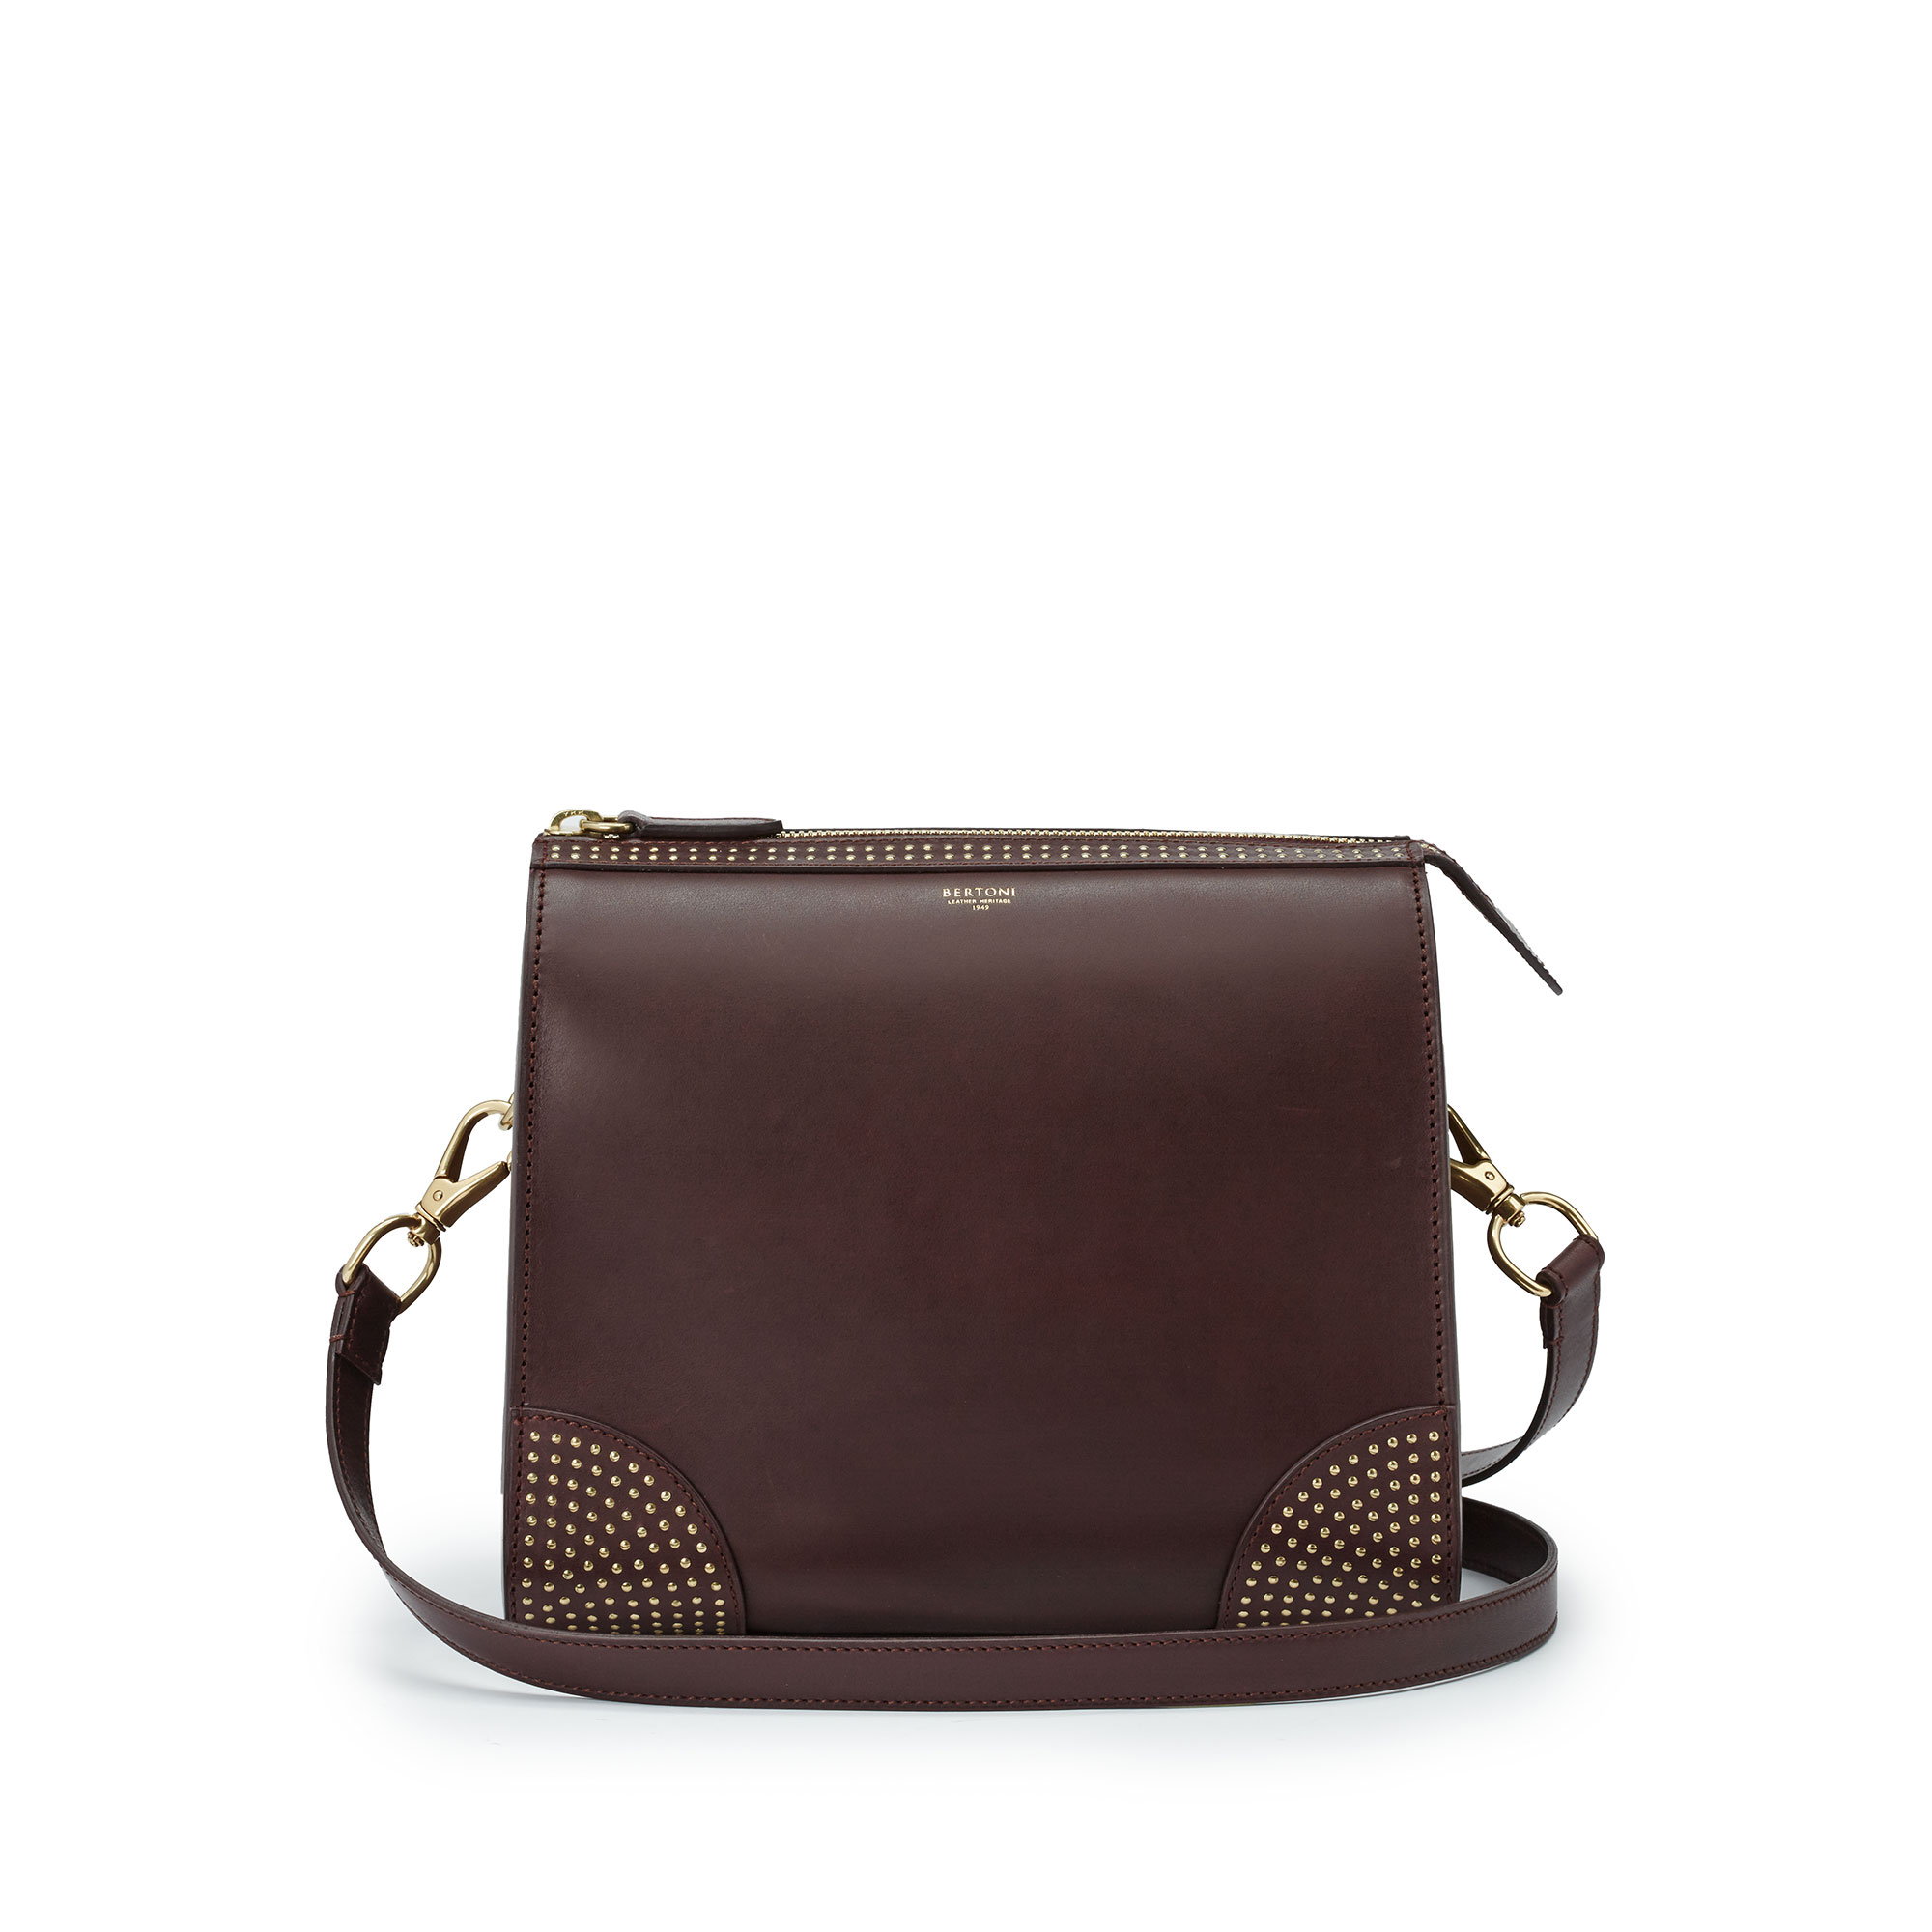 Darcy-Crossbody-bordeaux-french-calf-bag-Bertoni-1949